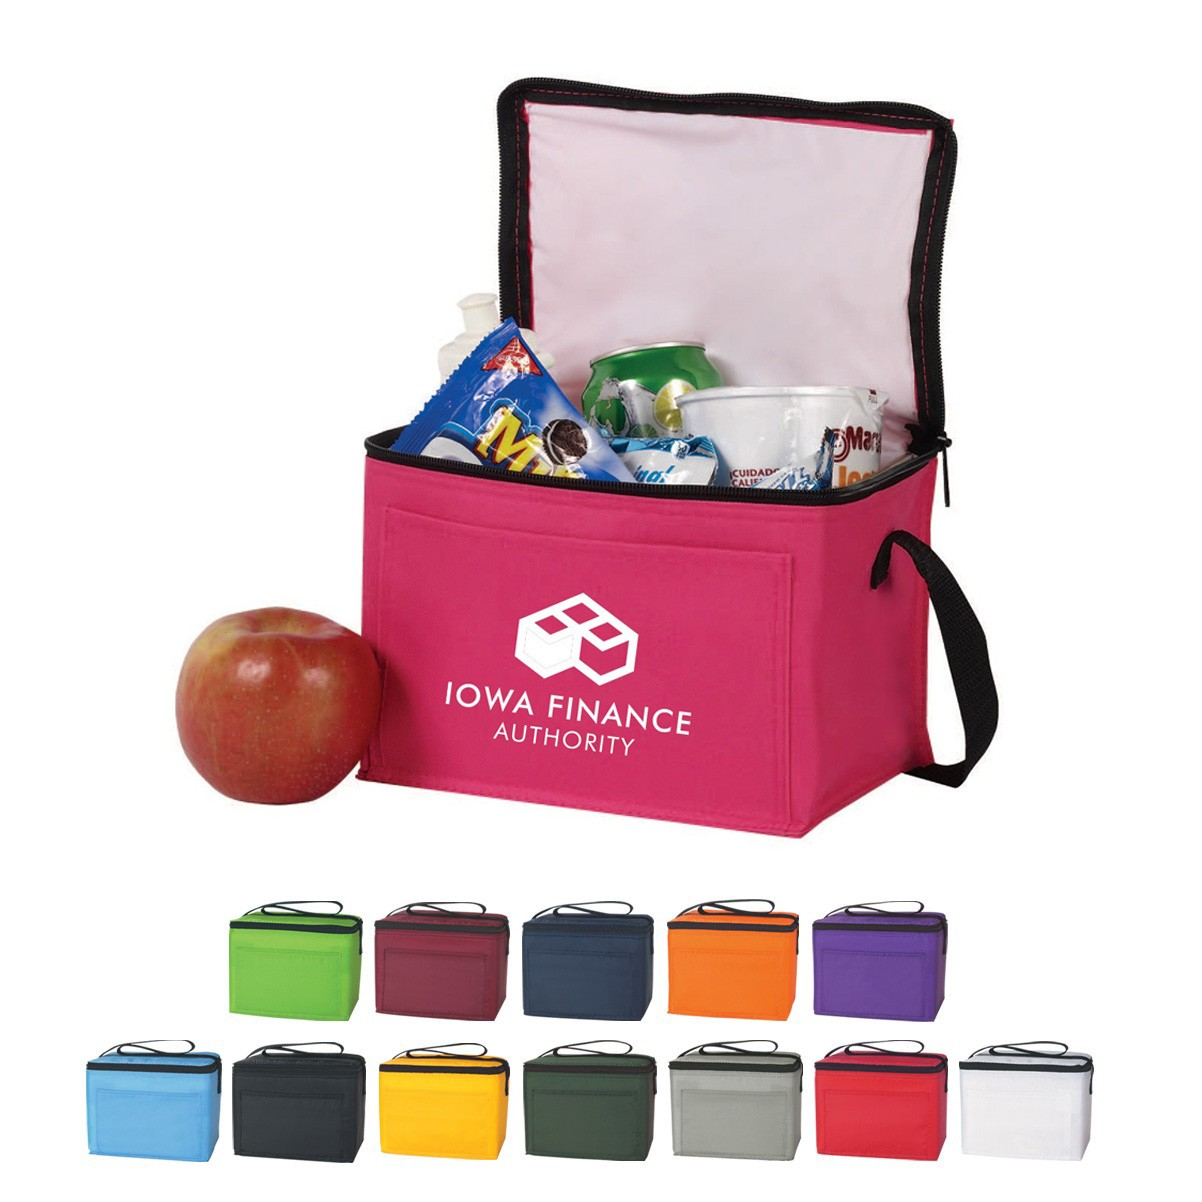 Promotional Non-Woven Cooler Bag